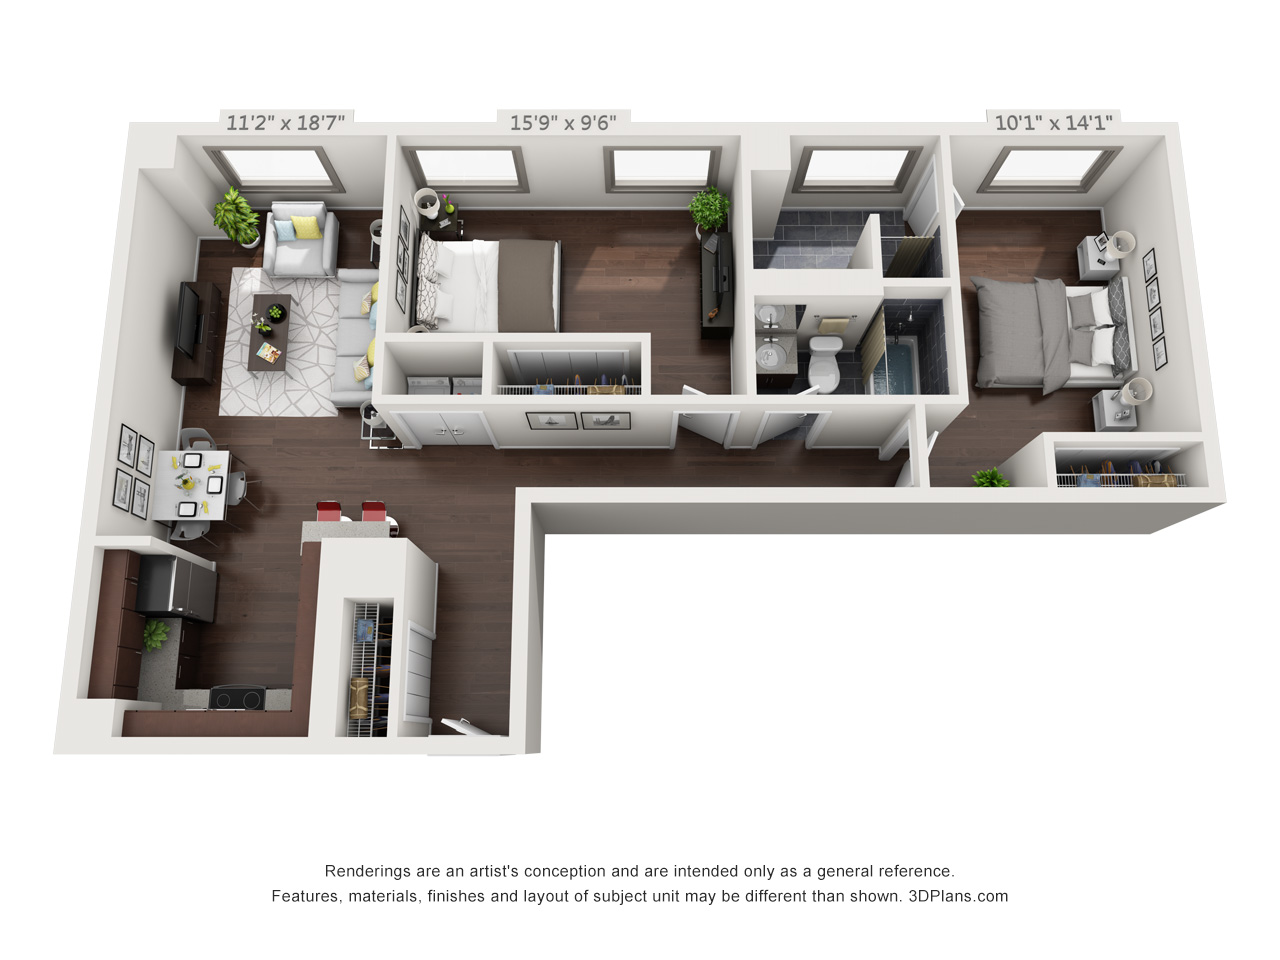 francisville apartments in philly - 2 bedroom